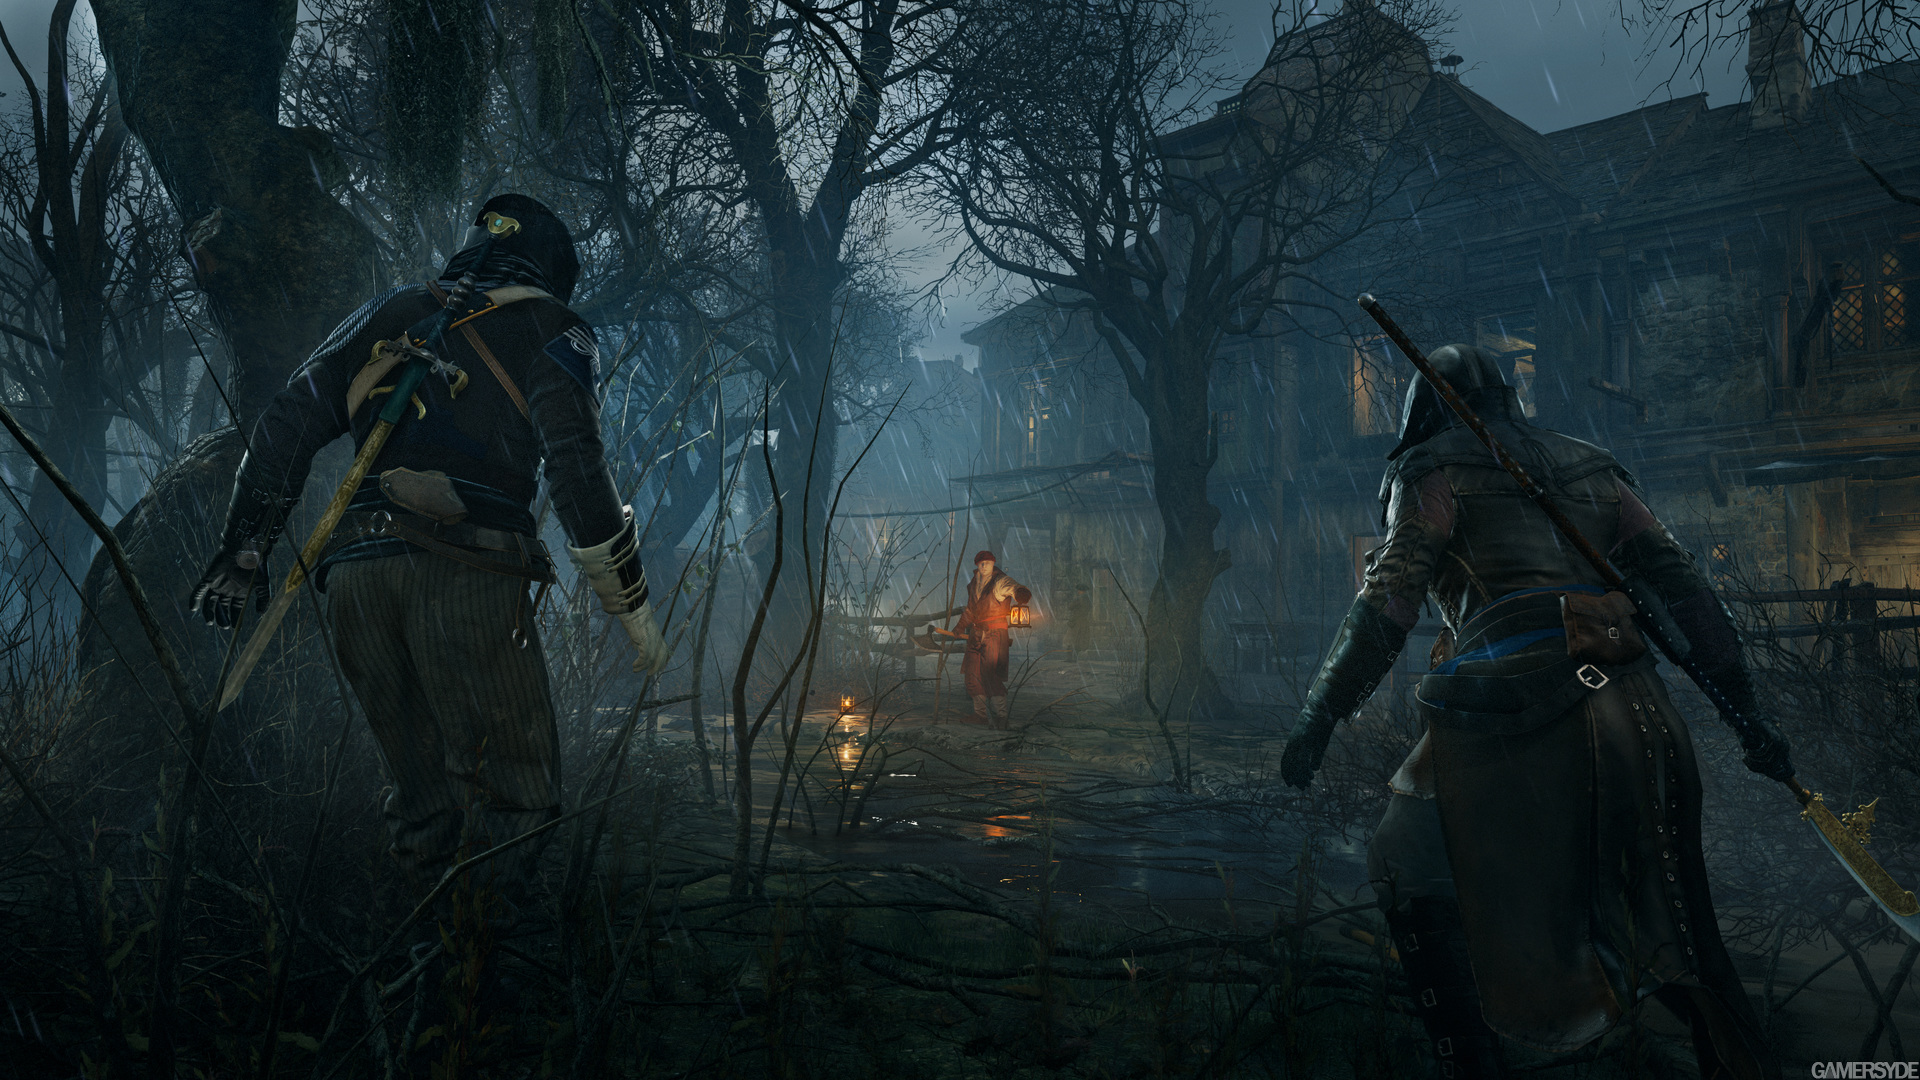 [Comic-Con] Novo gameplay de Assassin's Creed: Unity Image_assassin_s_creed_unity-25823-2908_0005